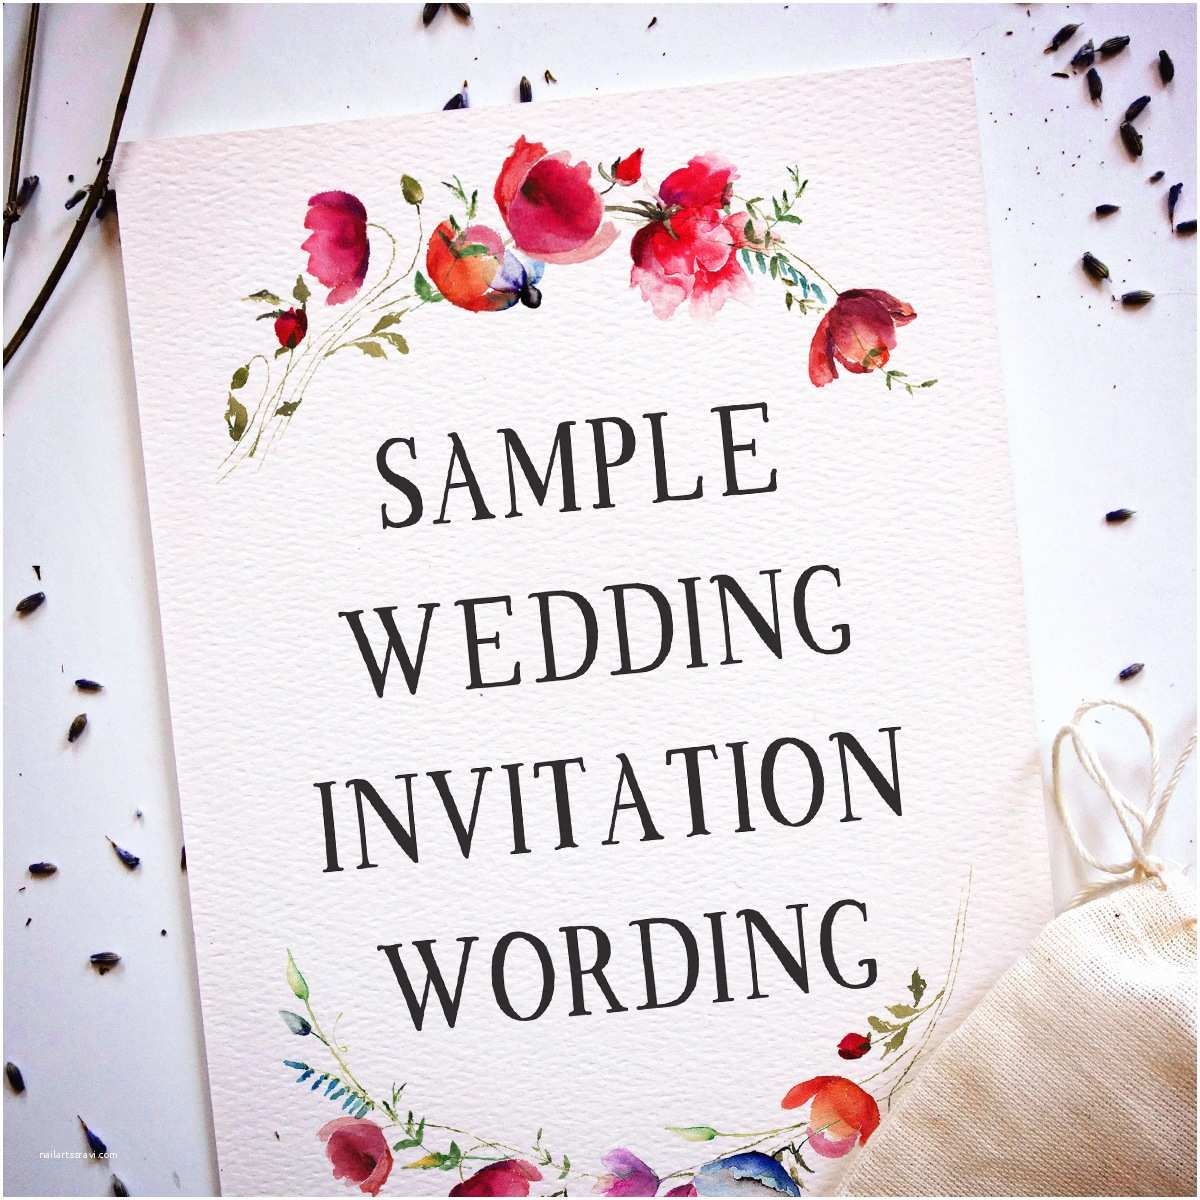 What to Put On Wedding Invitations Wedding Invitation Wording Samples From Traditional to